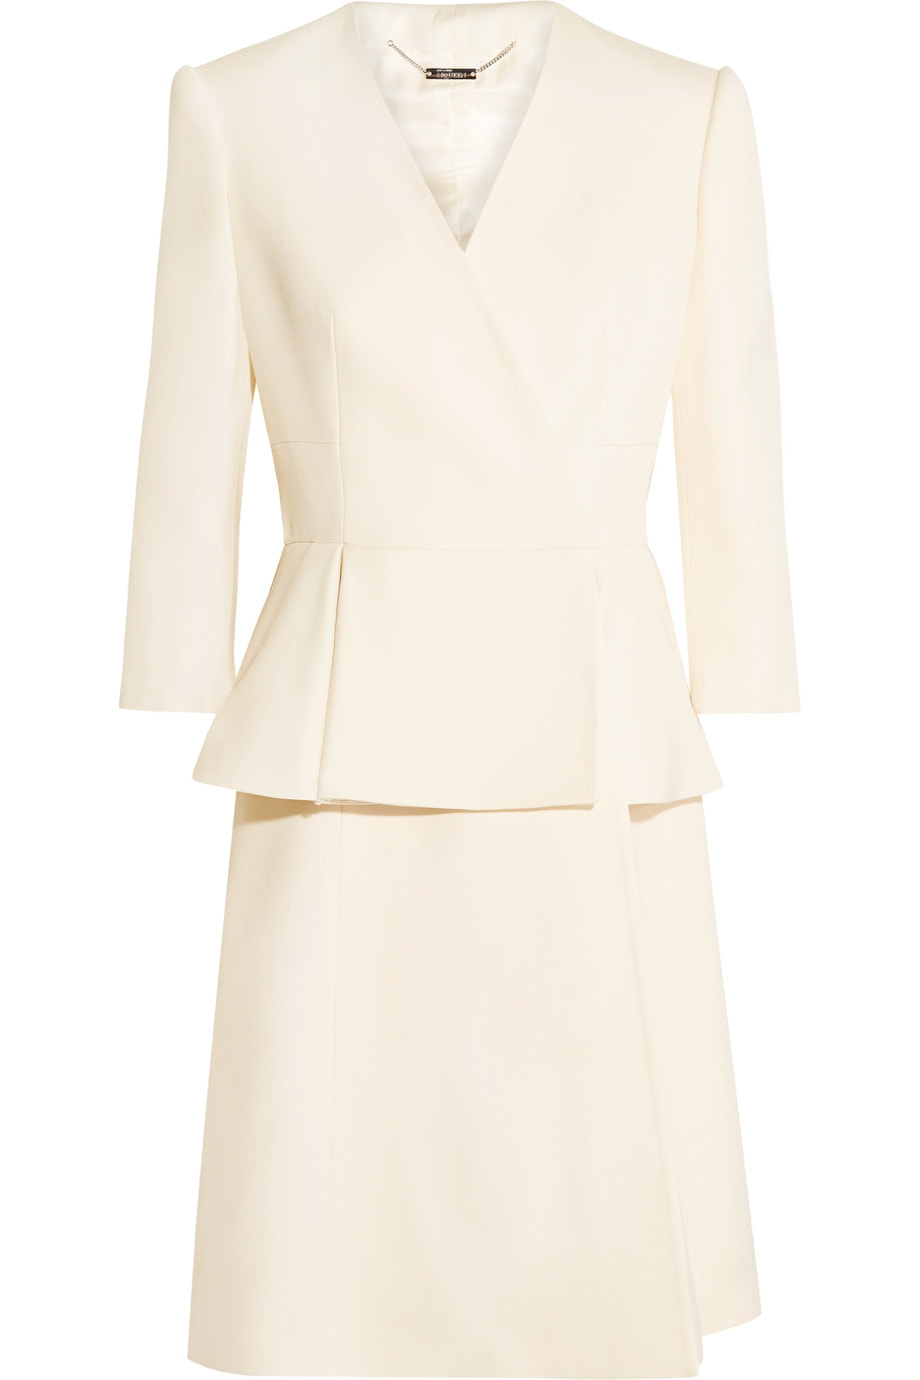 Alexander McQueen ivory wool and silk-blend twill peplum coat